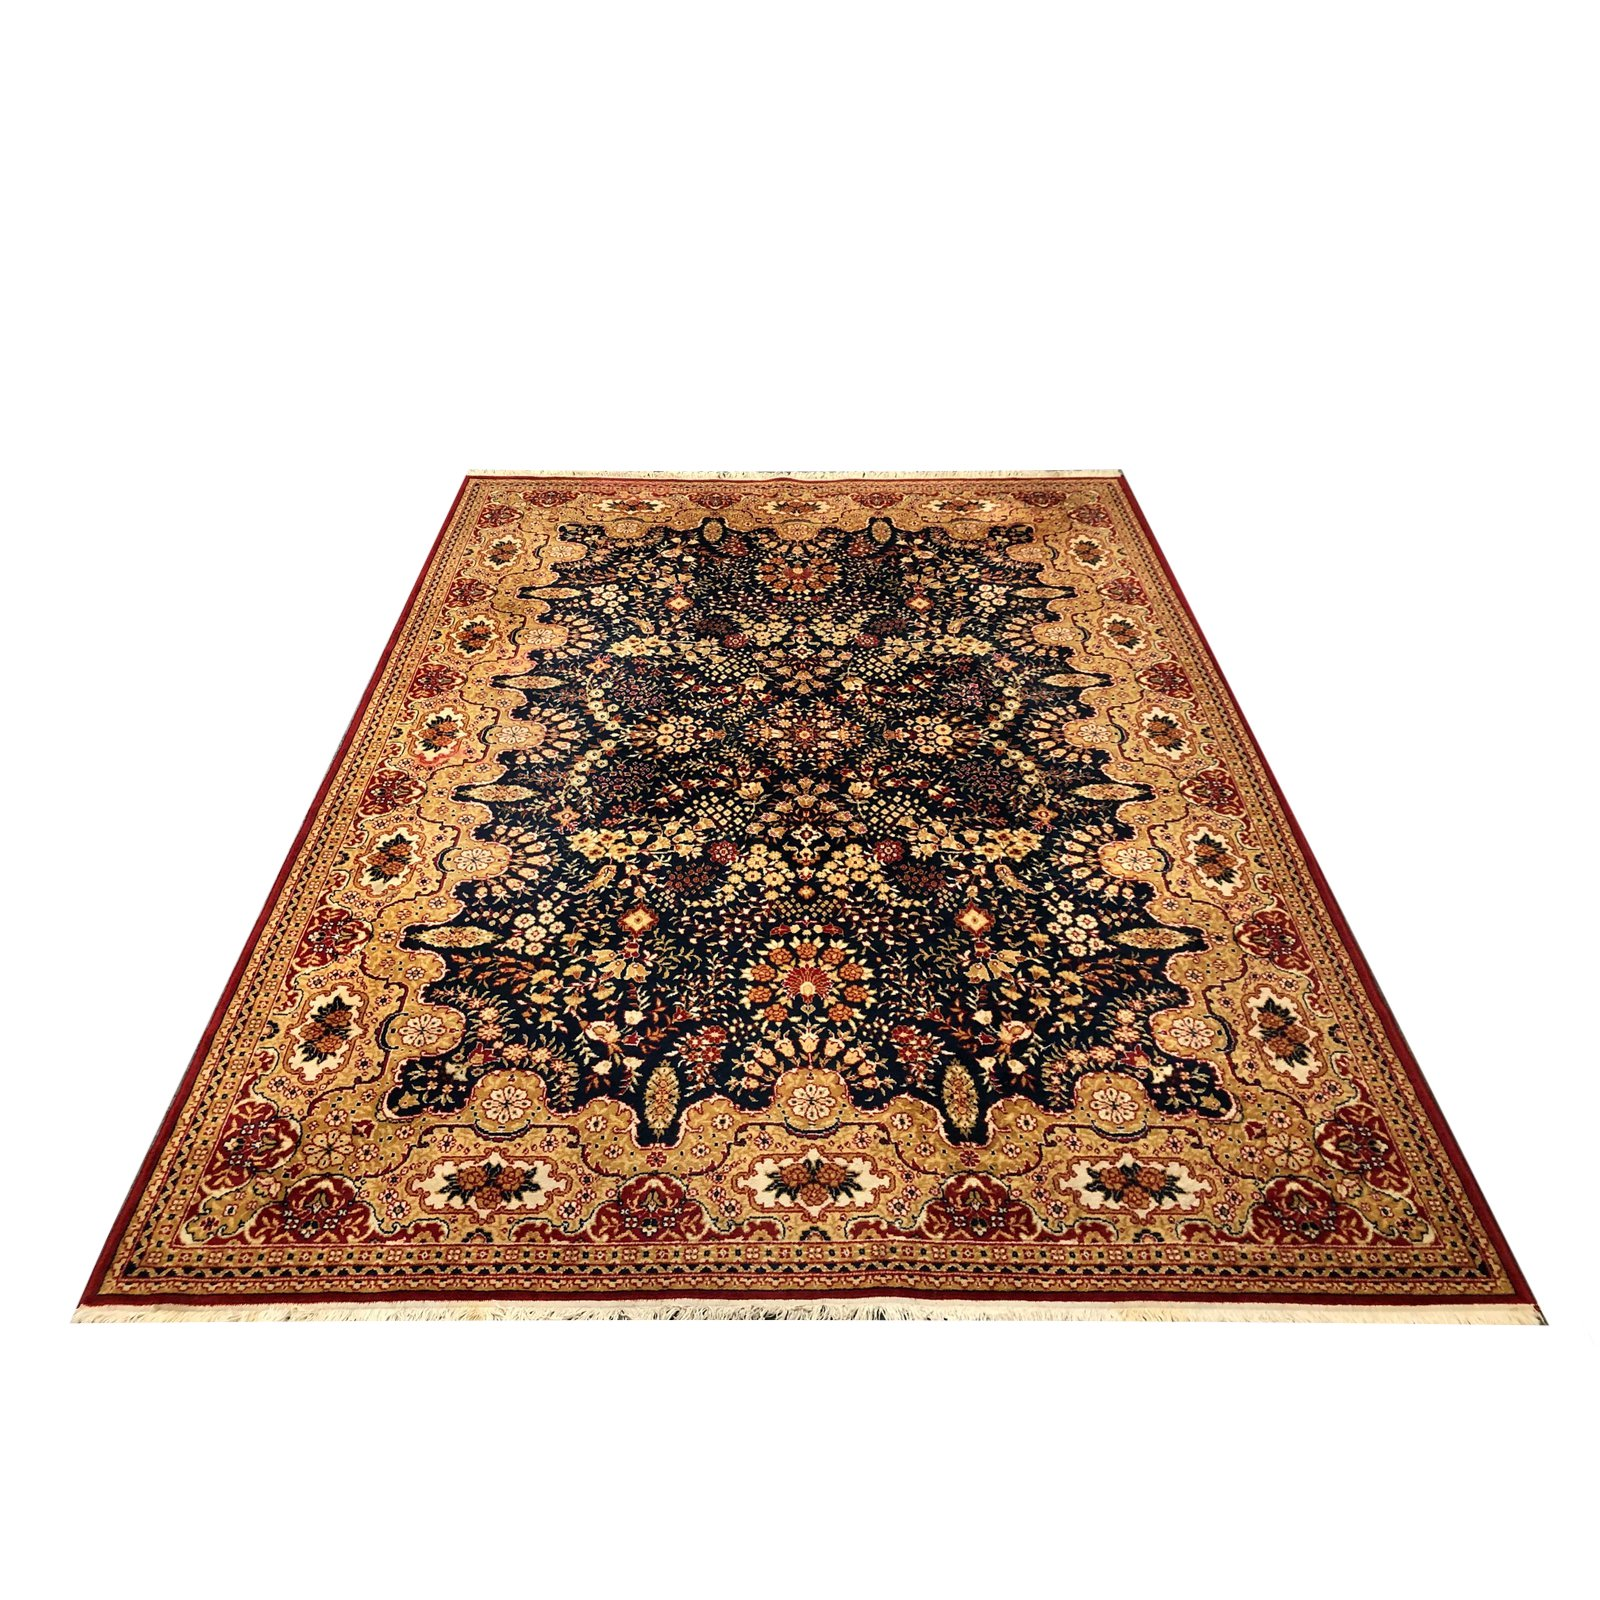 Sarouk Style Rug By A. Leon & Sons